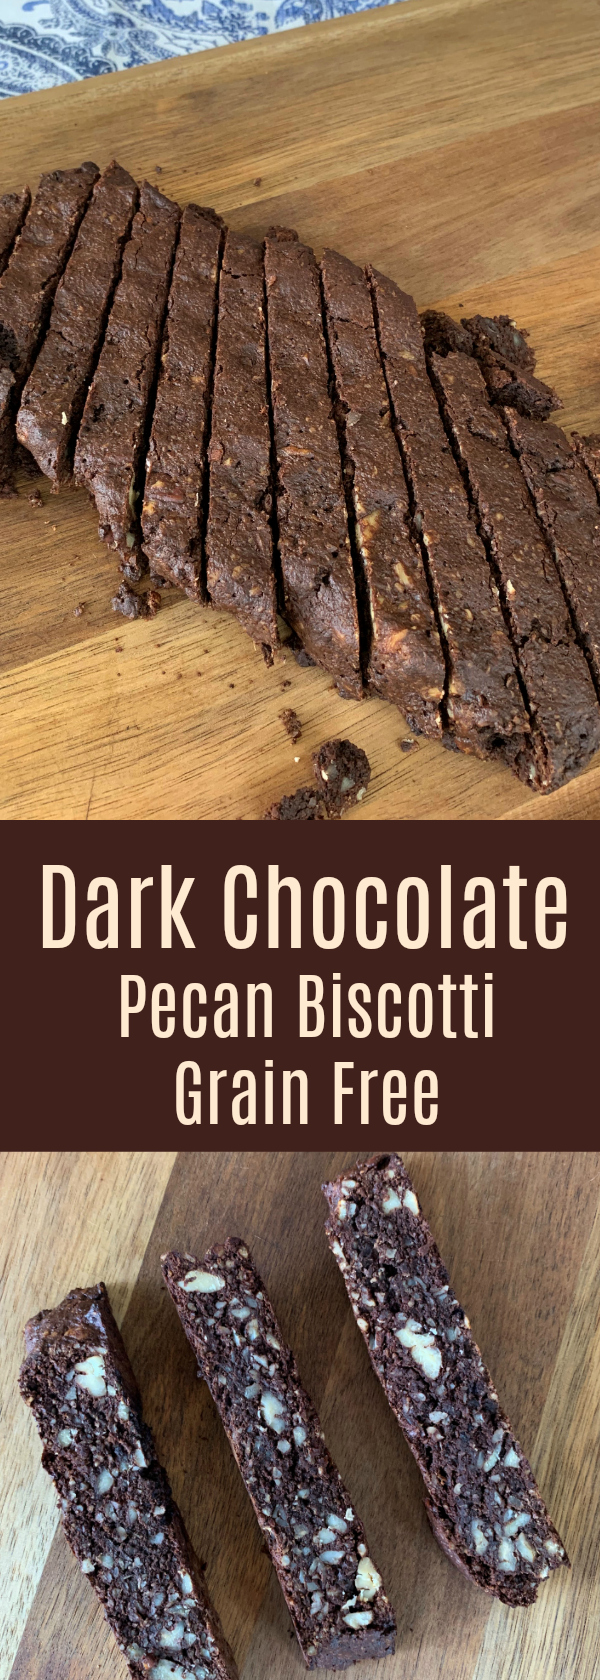 Dark Chocolate Pecan Biscotti Grain Free